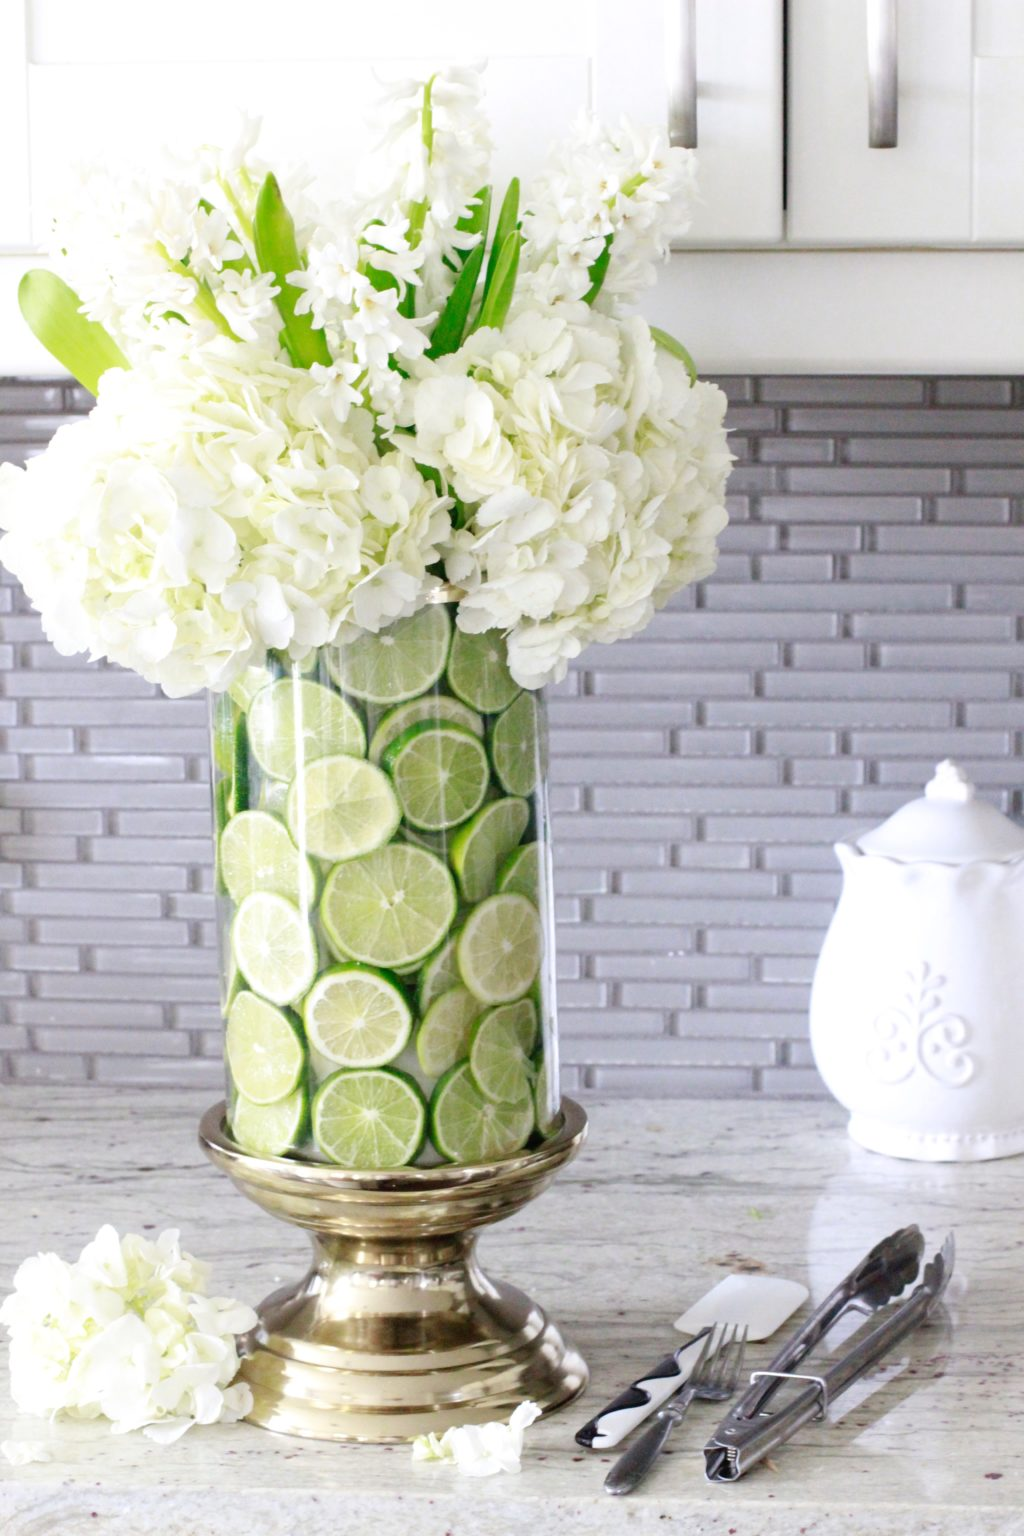 How to create a fruit and floral arrangement summer adams i added 3 huge hydrangeas to the inner vase so that they were just covering the very top of the hurricane vase and lime slices reviewsmspy